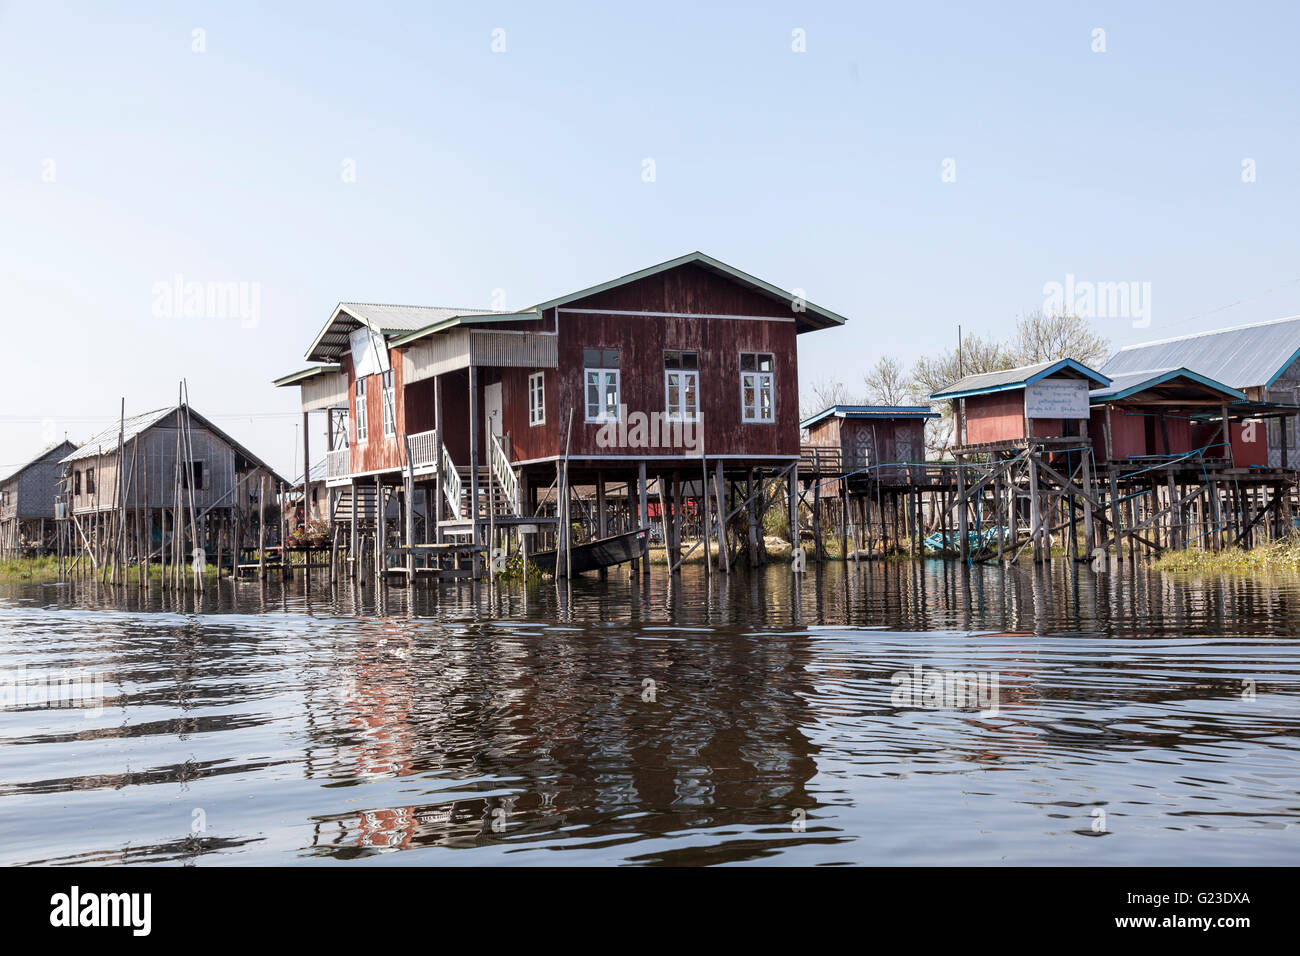 Light and on top of their stilts, the Inle Lake houses surprise visitors by the variety of their shapes and colours - Stock Image